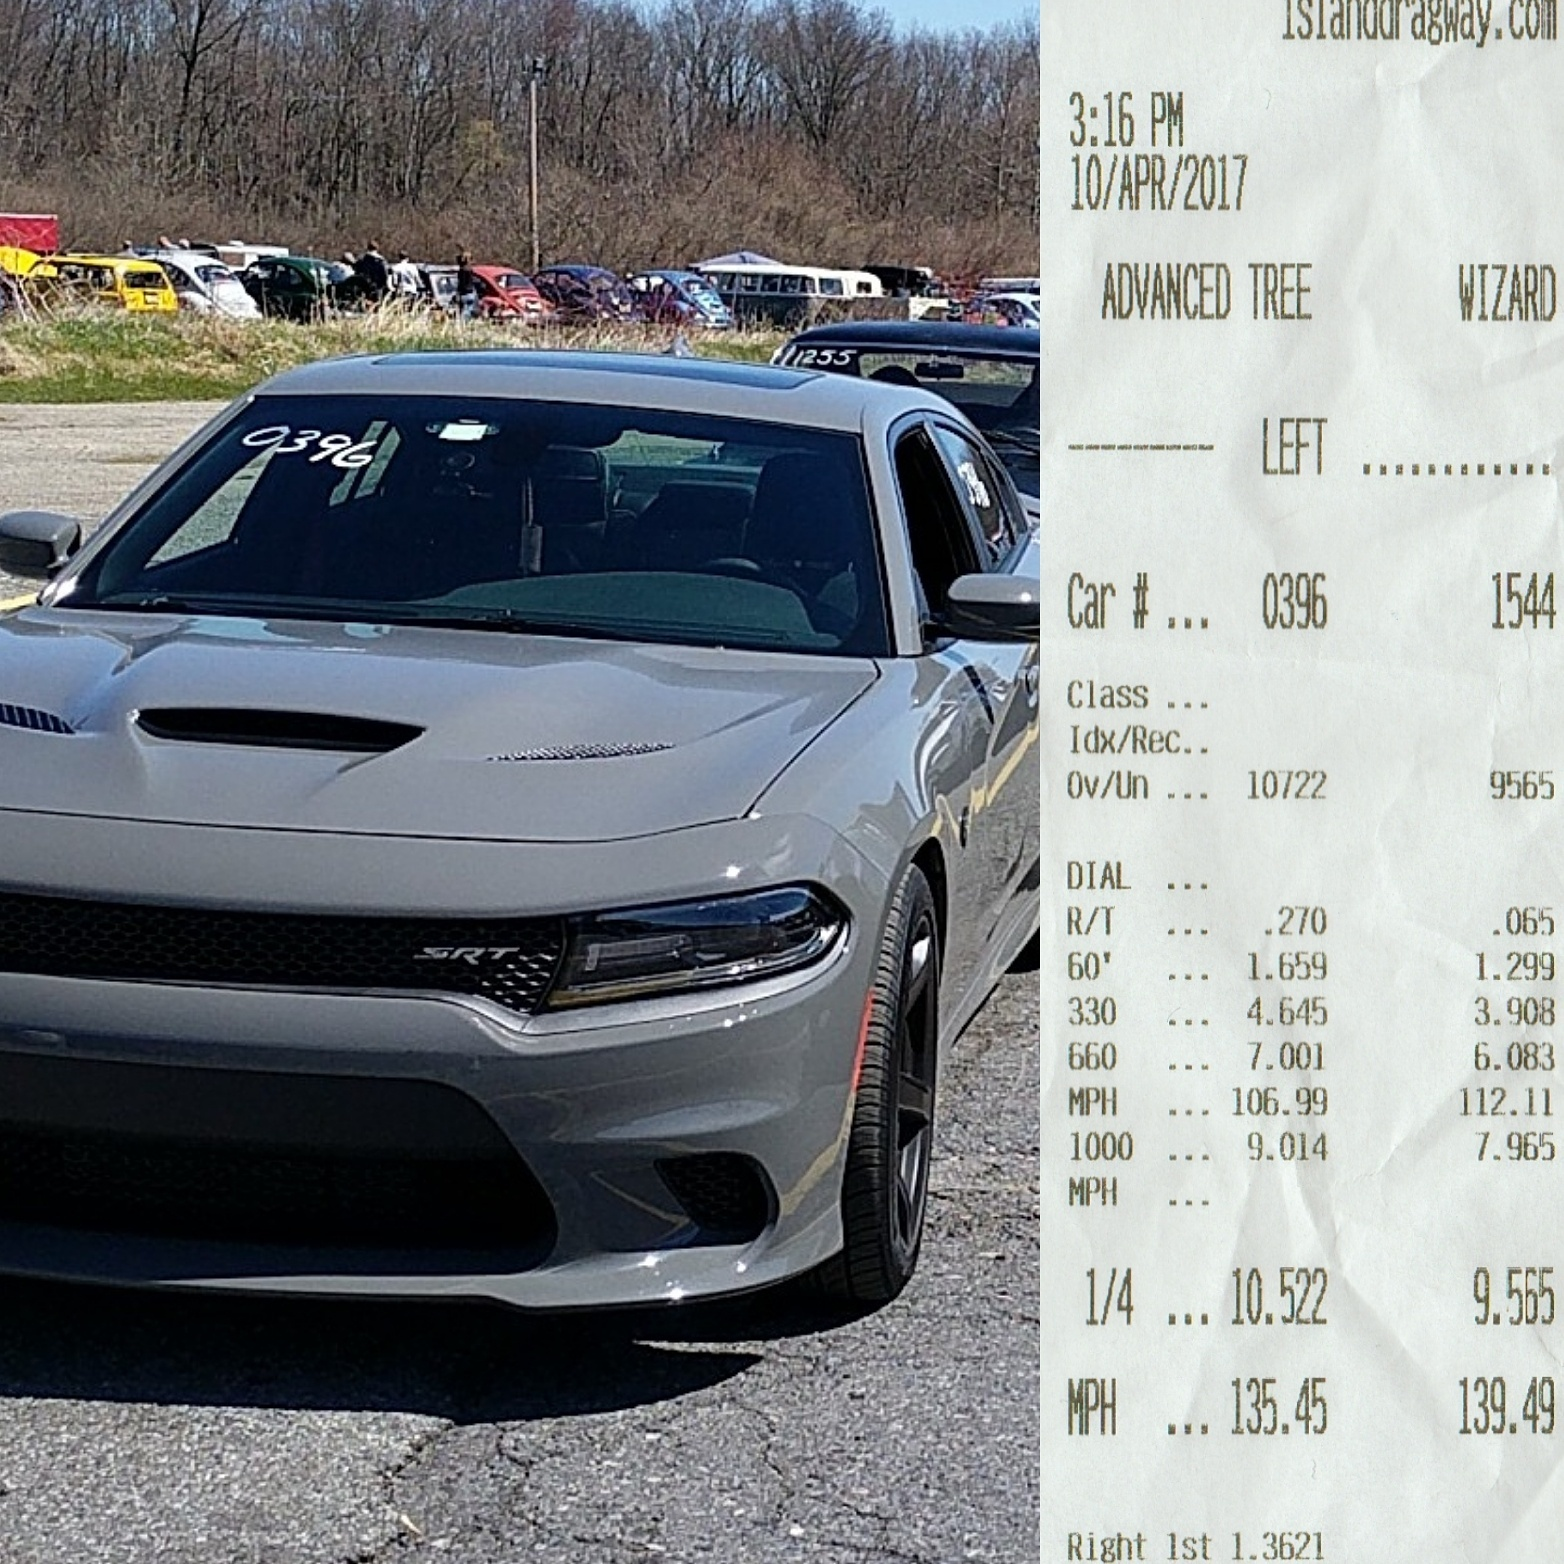 2017 Dodge Charger Hellcat 1 4 Mile Drag Racing Timeslip Specs 0 60